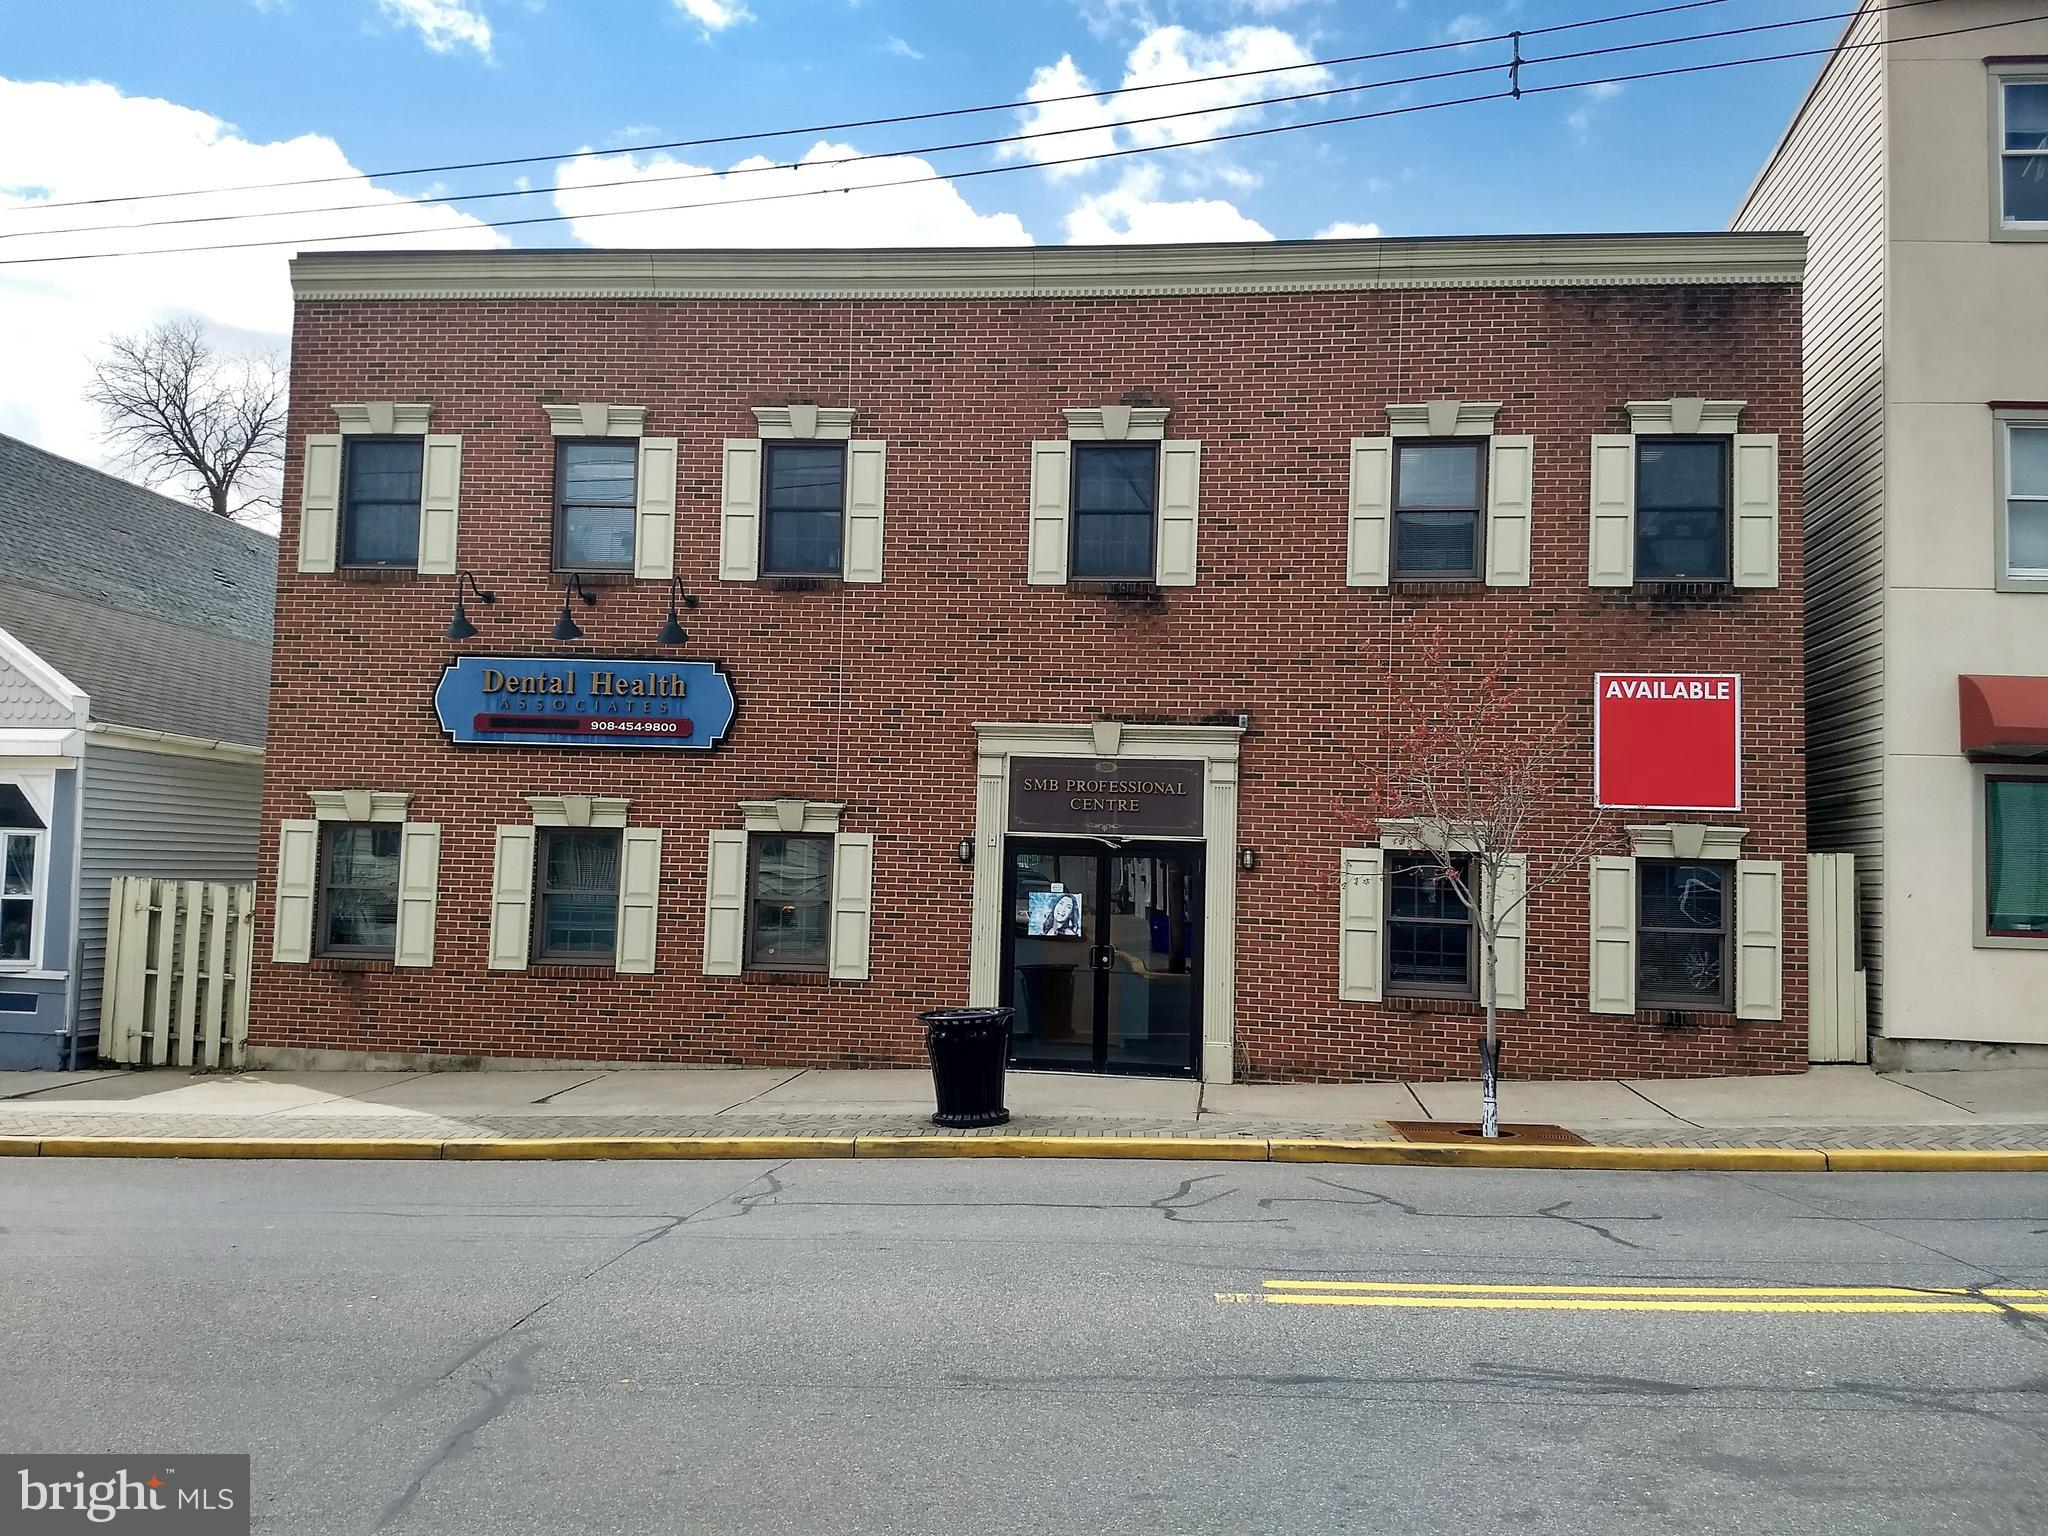 320 S MAIN STREET, PHILLIPSBURG, NJ 08865